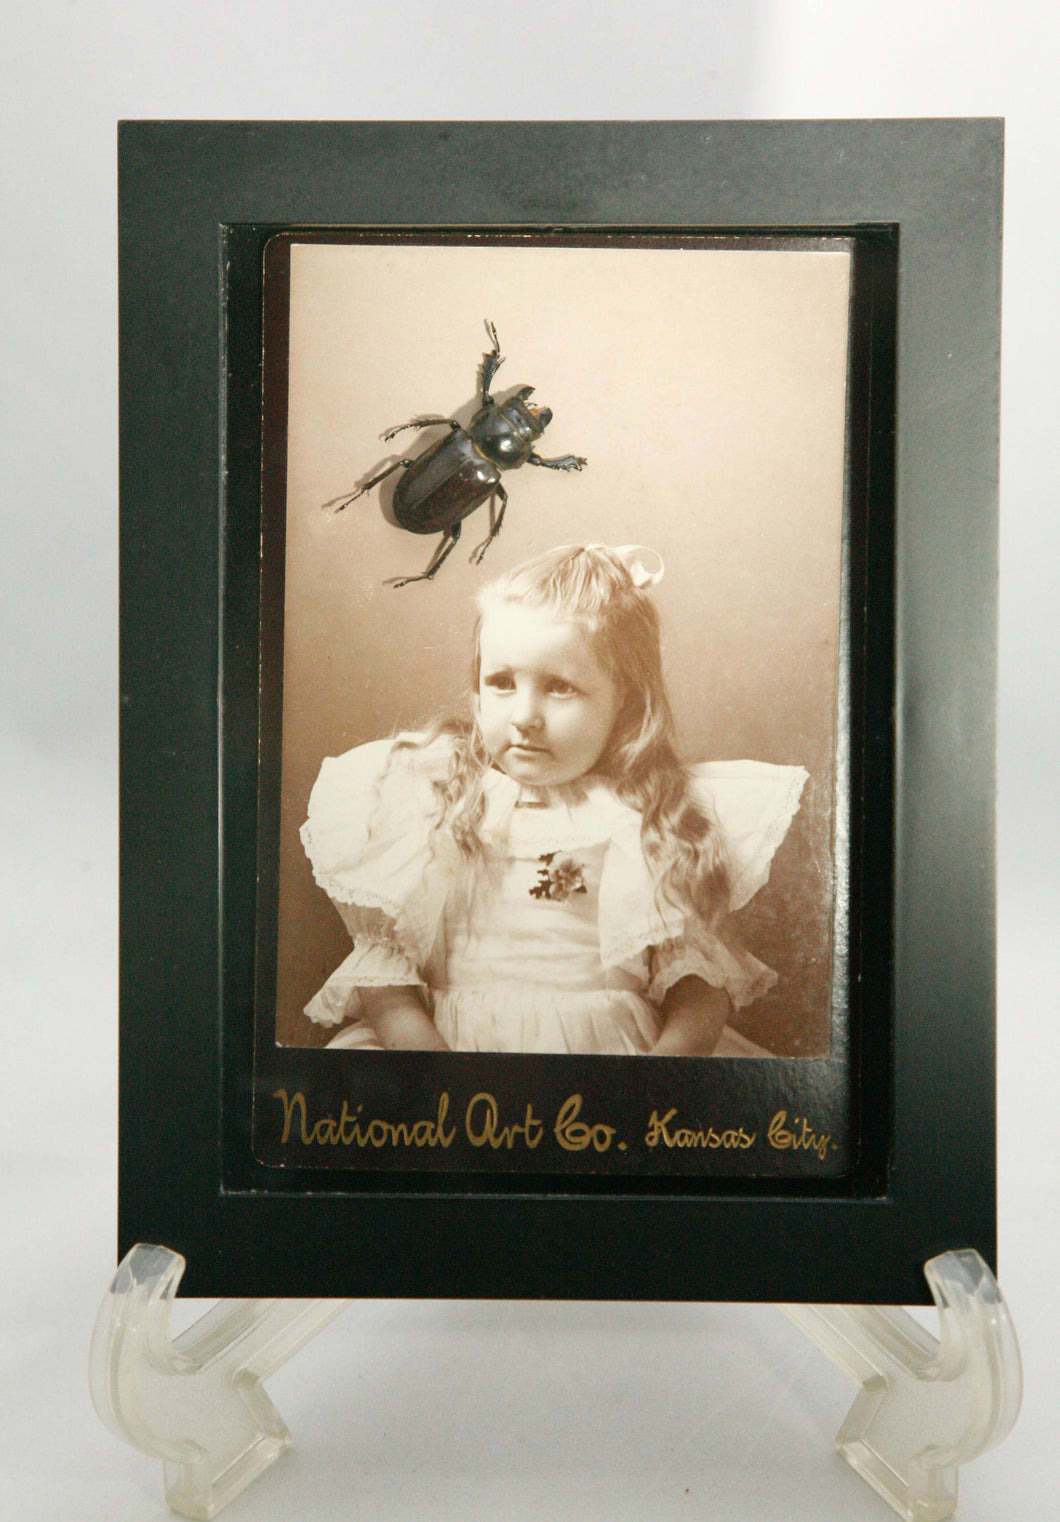 Child and Beetle Framed Entemology Display with Antique Cabinet Card and Real Preserved Insect